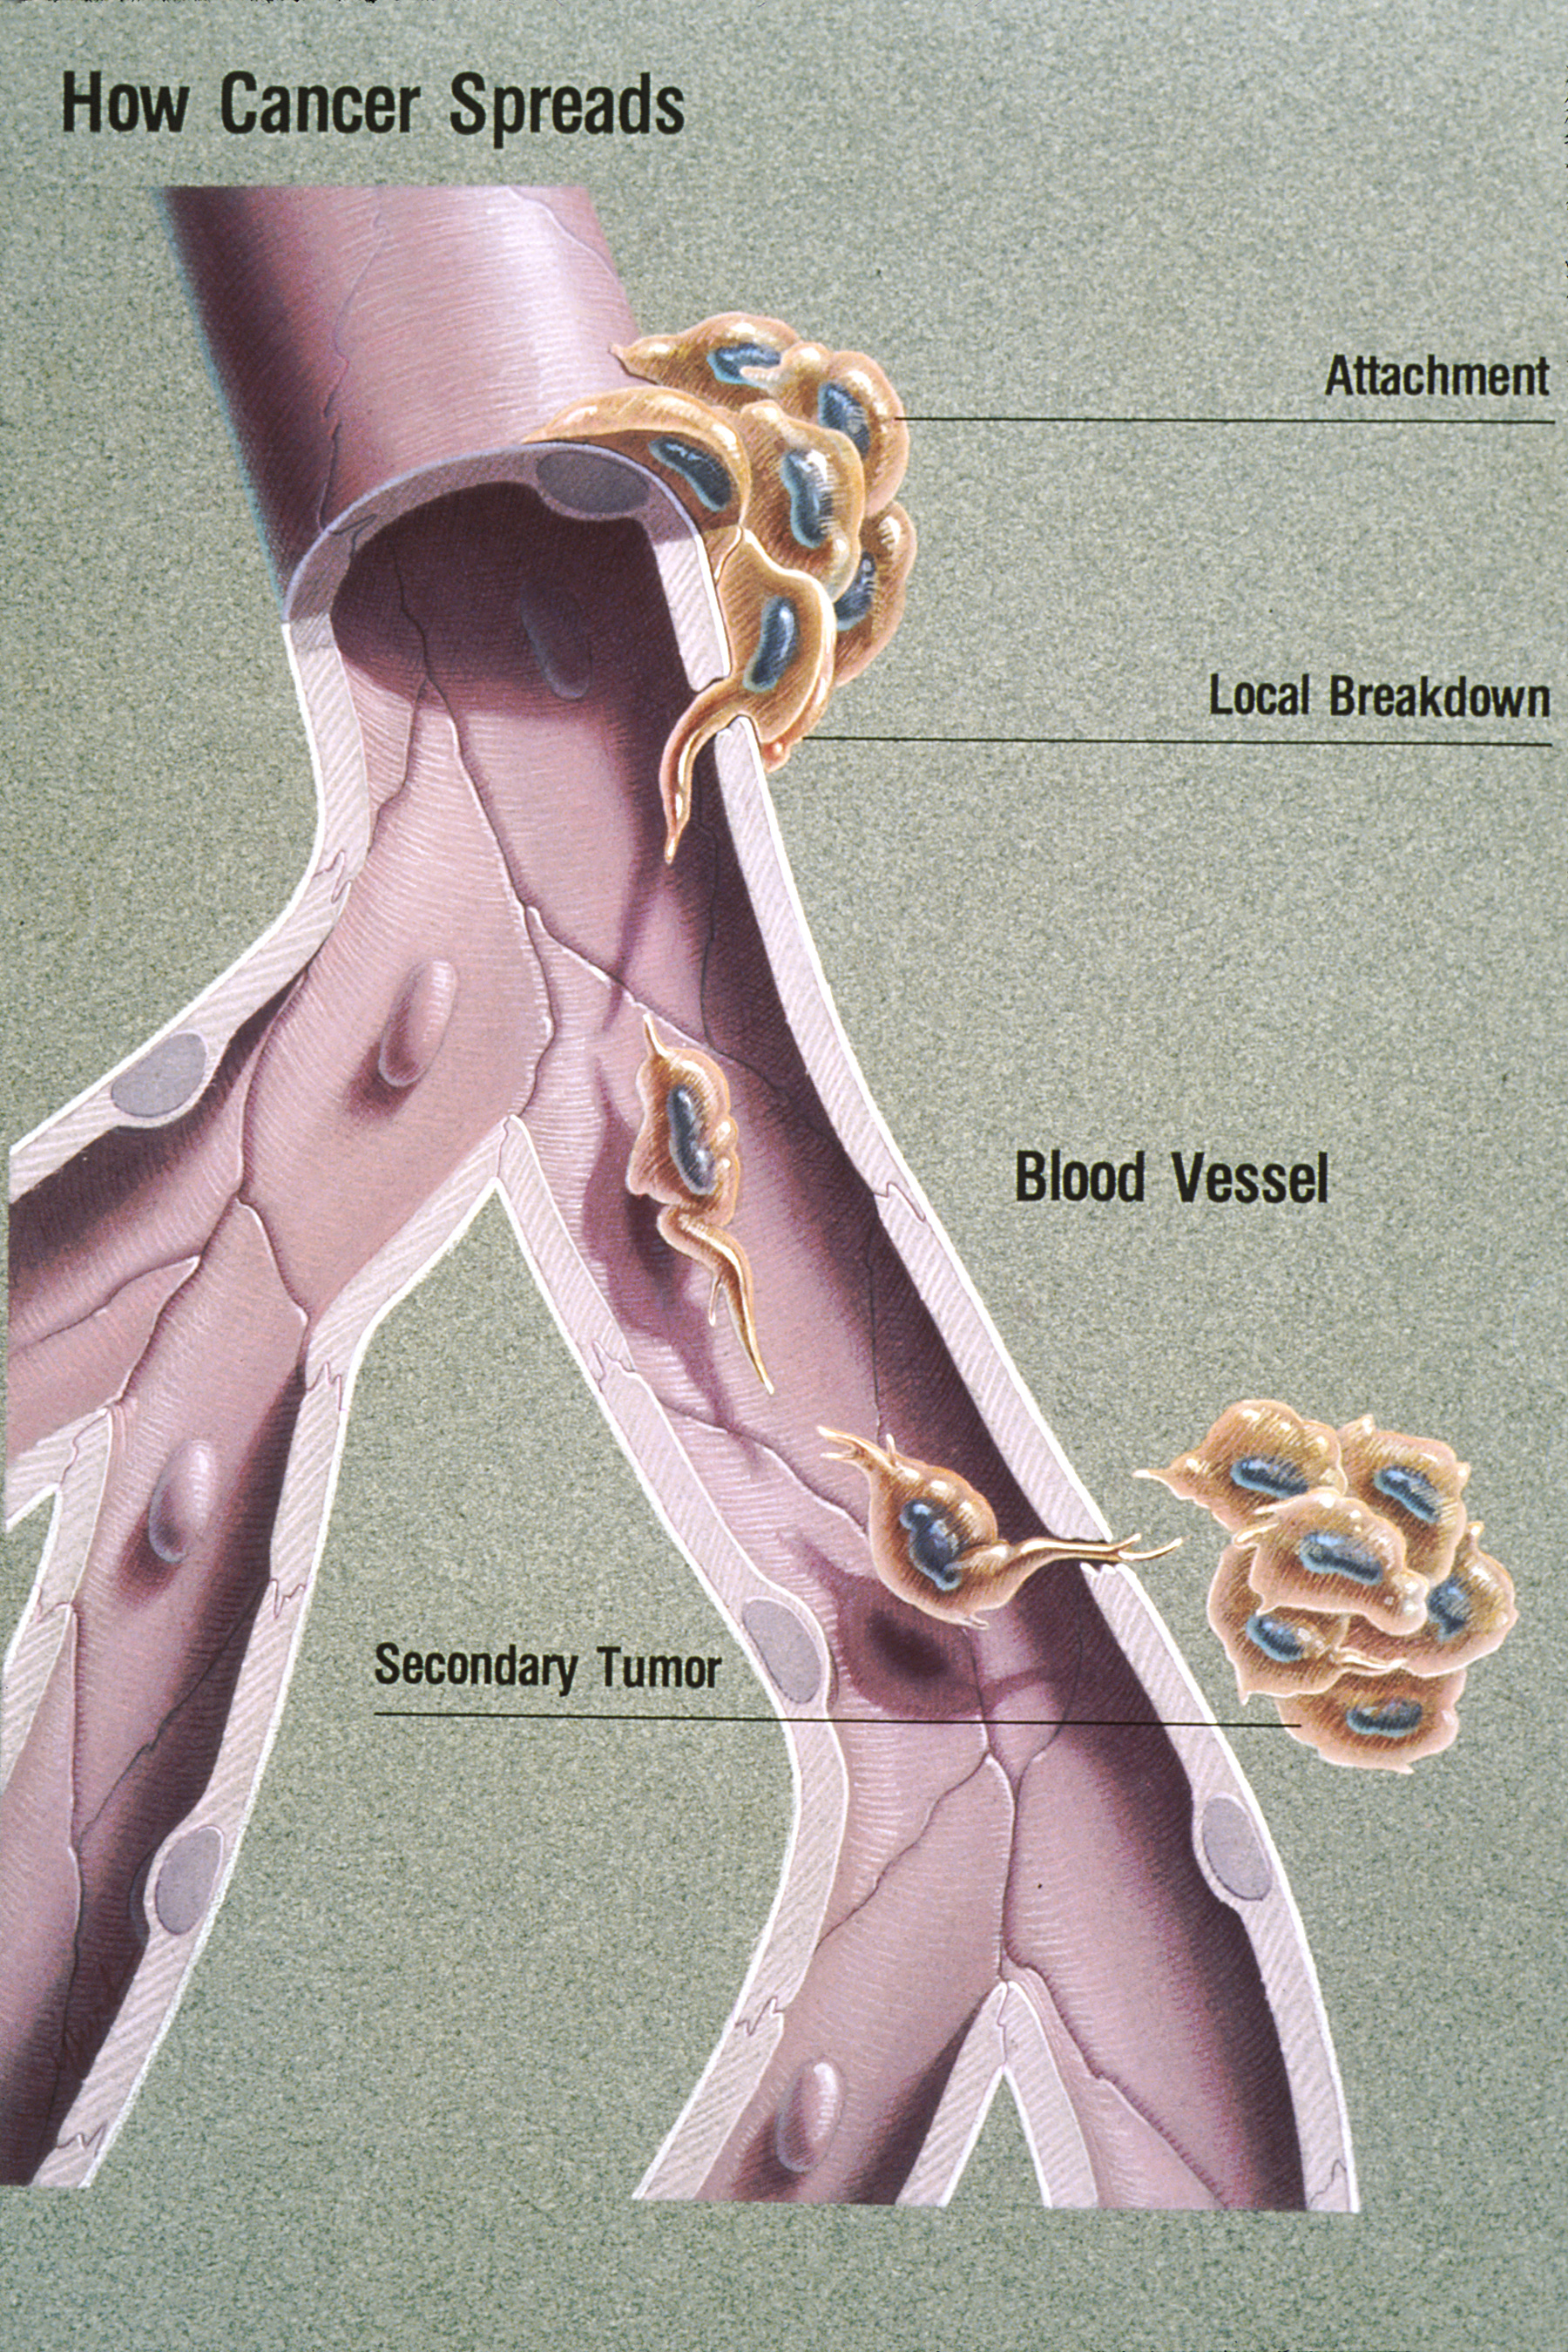 metastatic cancer causes)